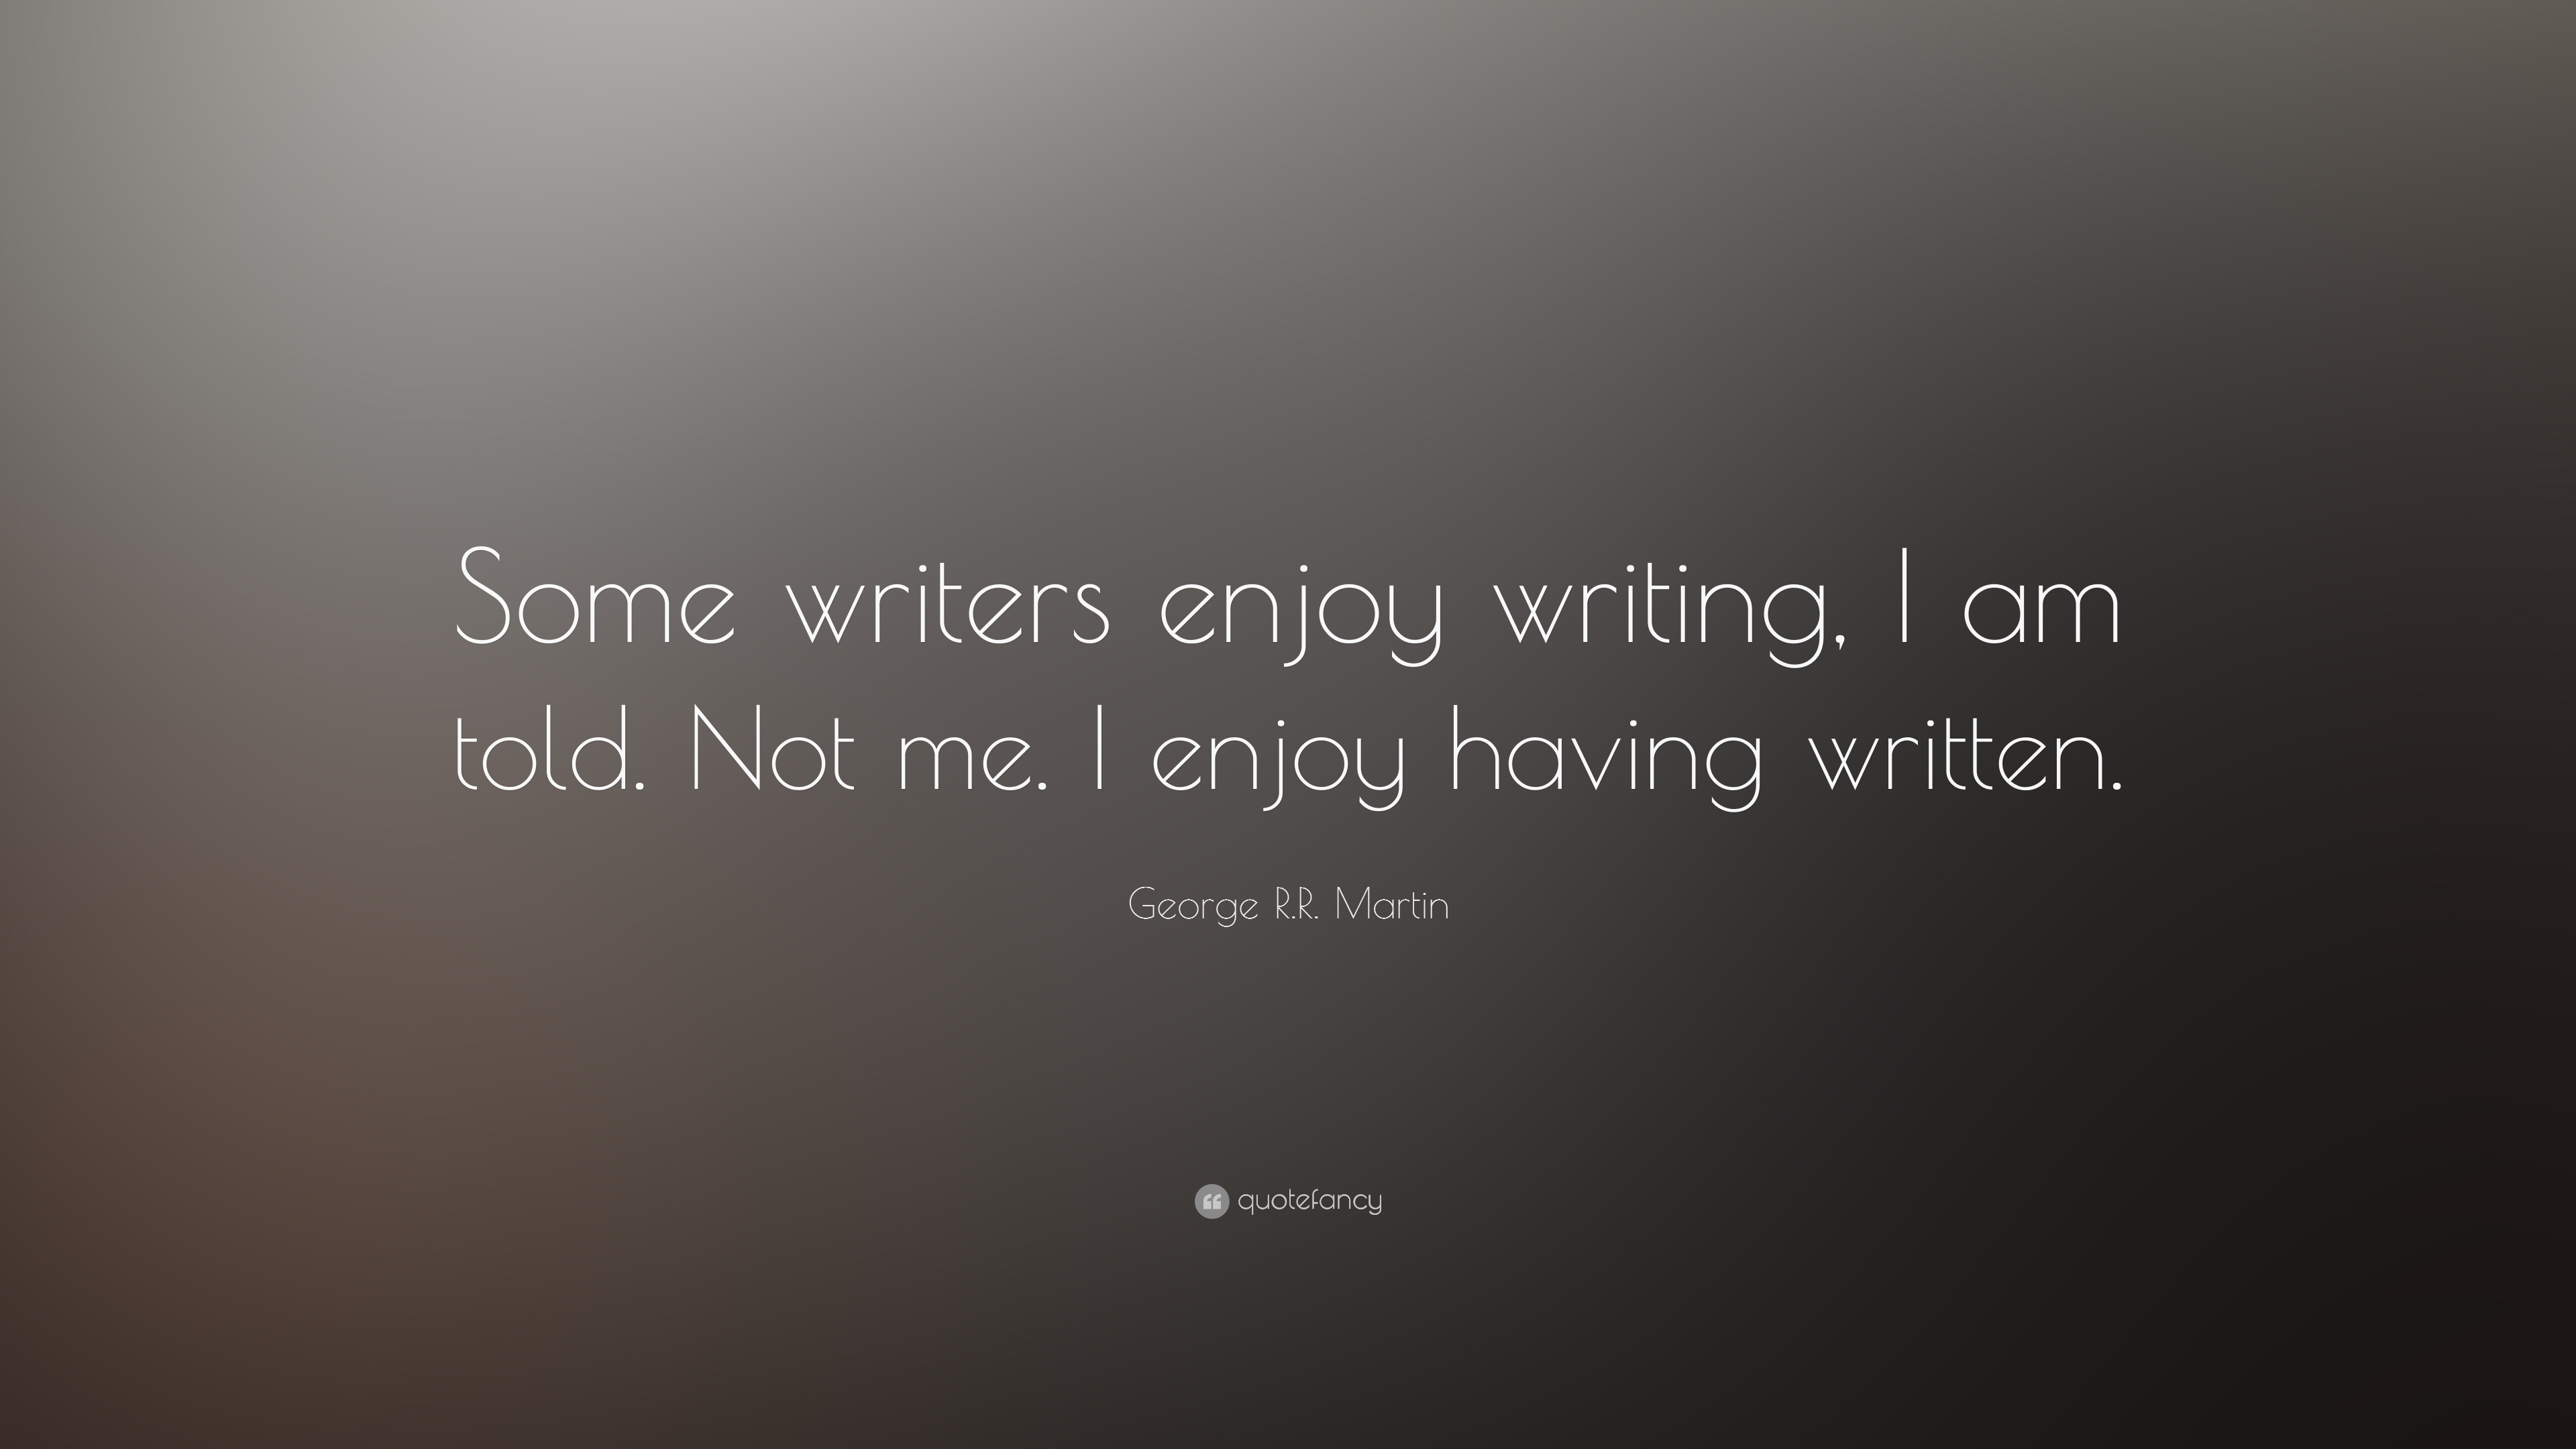 George Rr Martin Quote Some Writers Enjoy Writing I Am Told